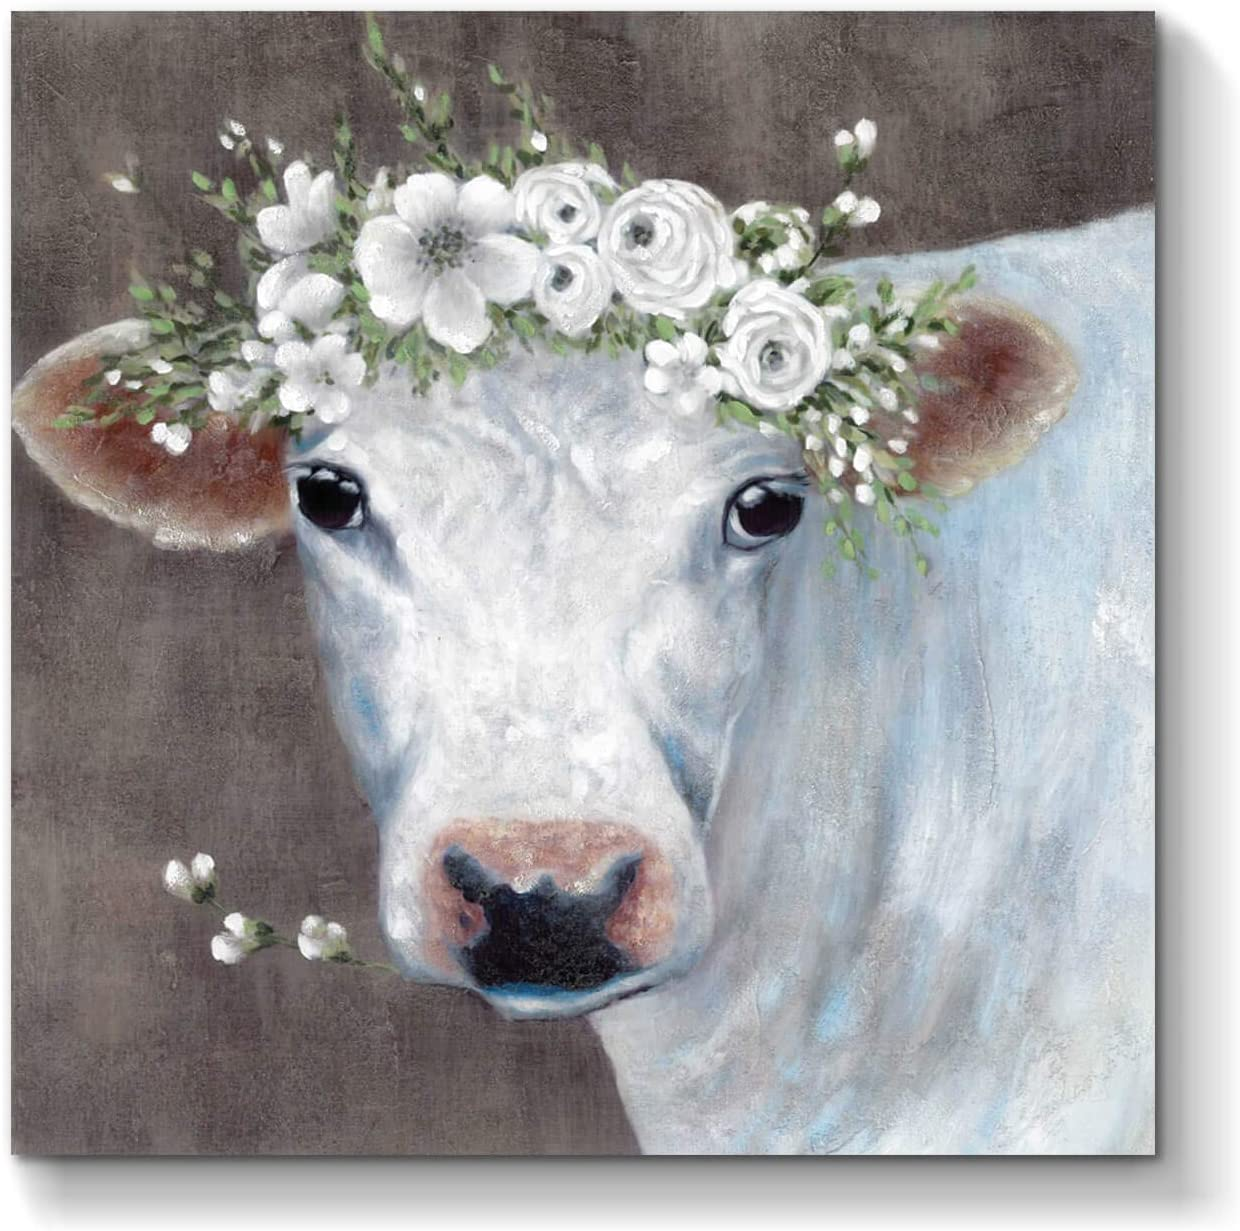 Limited Long Beach Mall time cheap sale White Cow Picture Wall Art: Artwork Abstract Animal Painting on